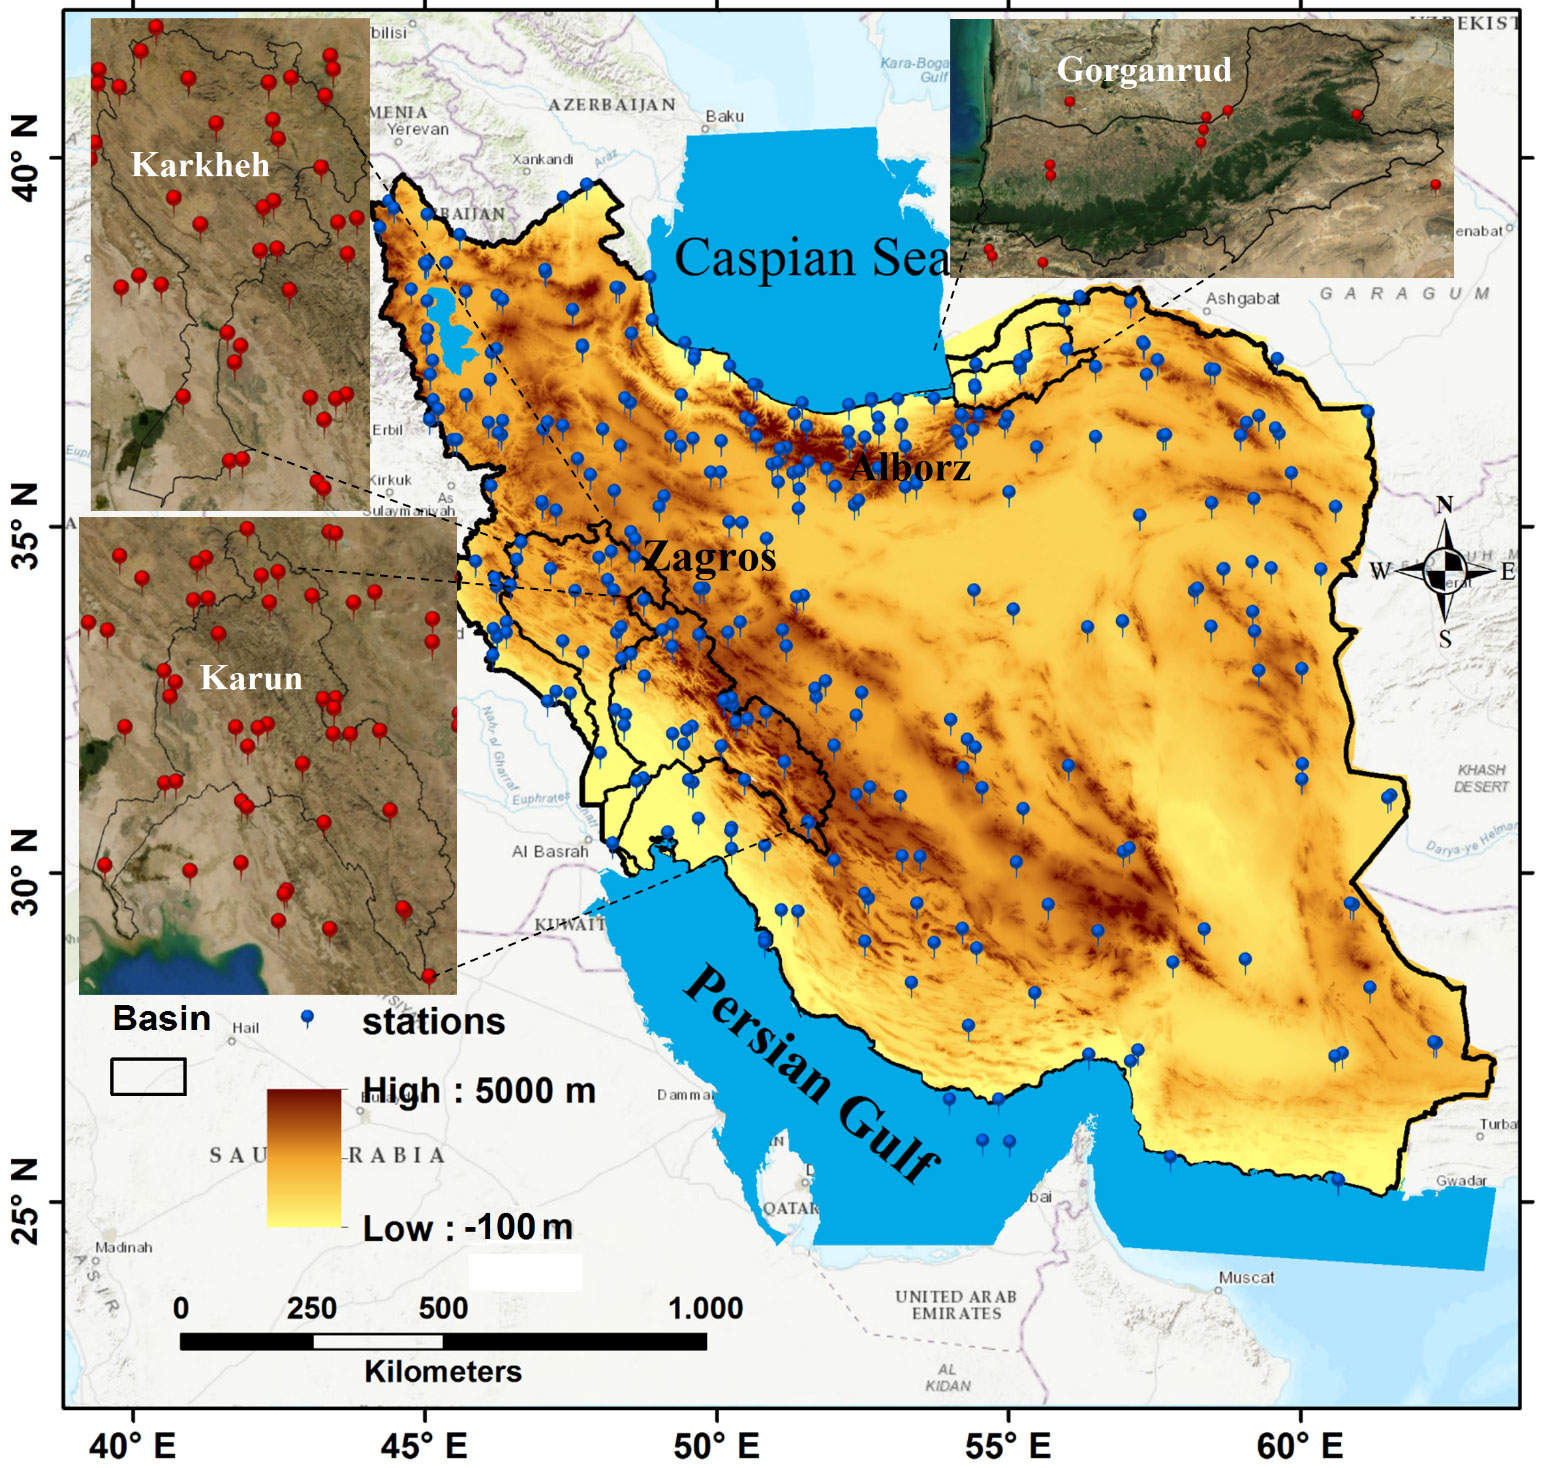 Figure 3. The spatial distribution of in situ observations on the elevation map of Iran. The three basins that were affected by the severe floods in 2019, are indicated.